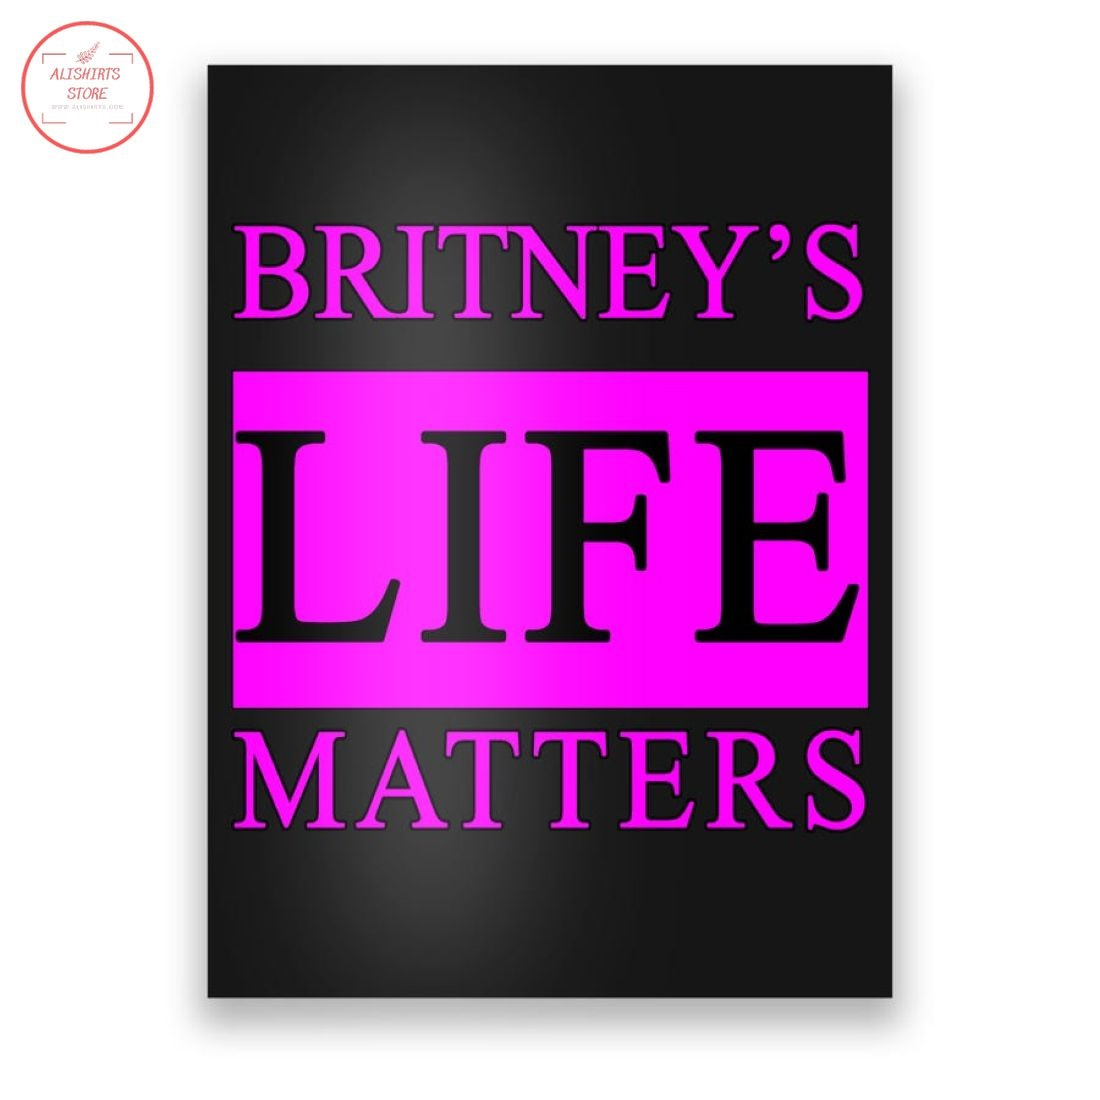 Britney's Life Matters BLM Free Britney Canvas